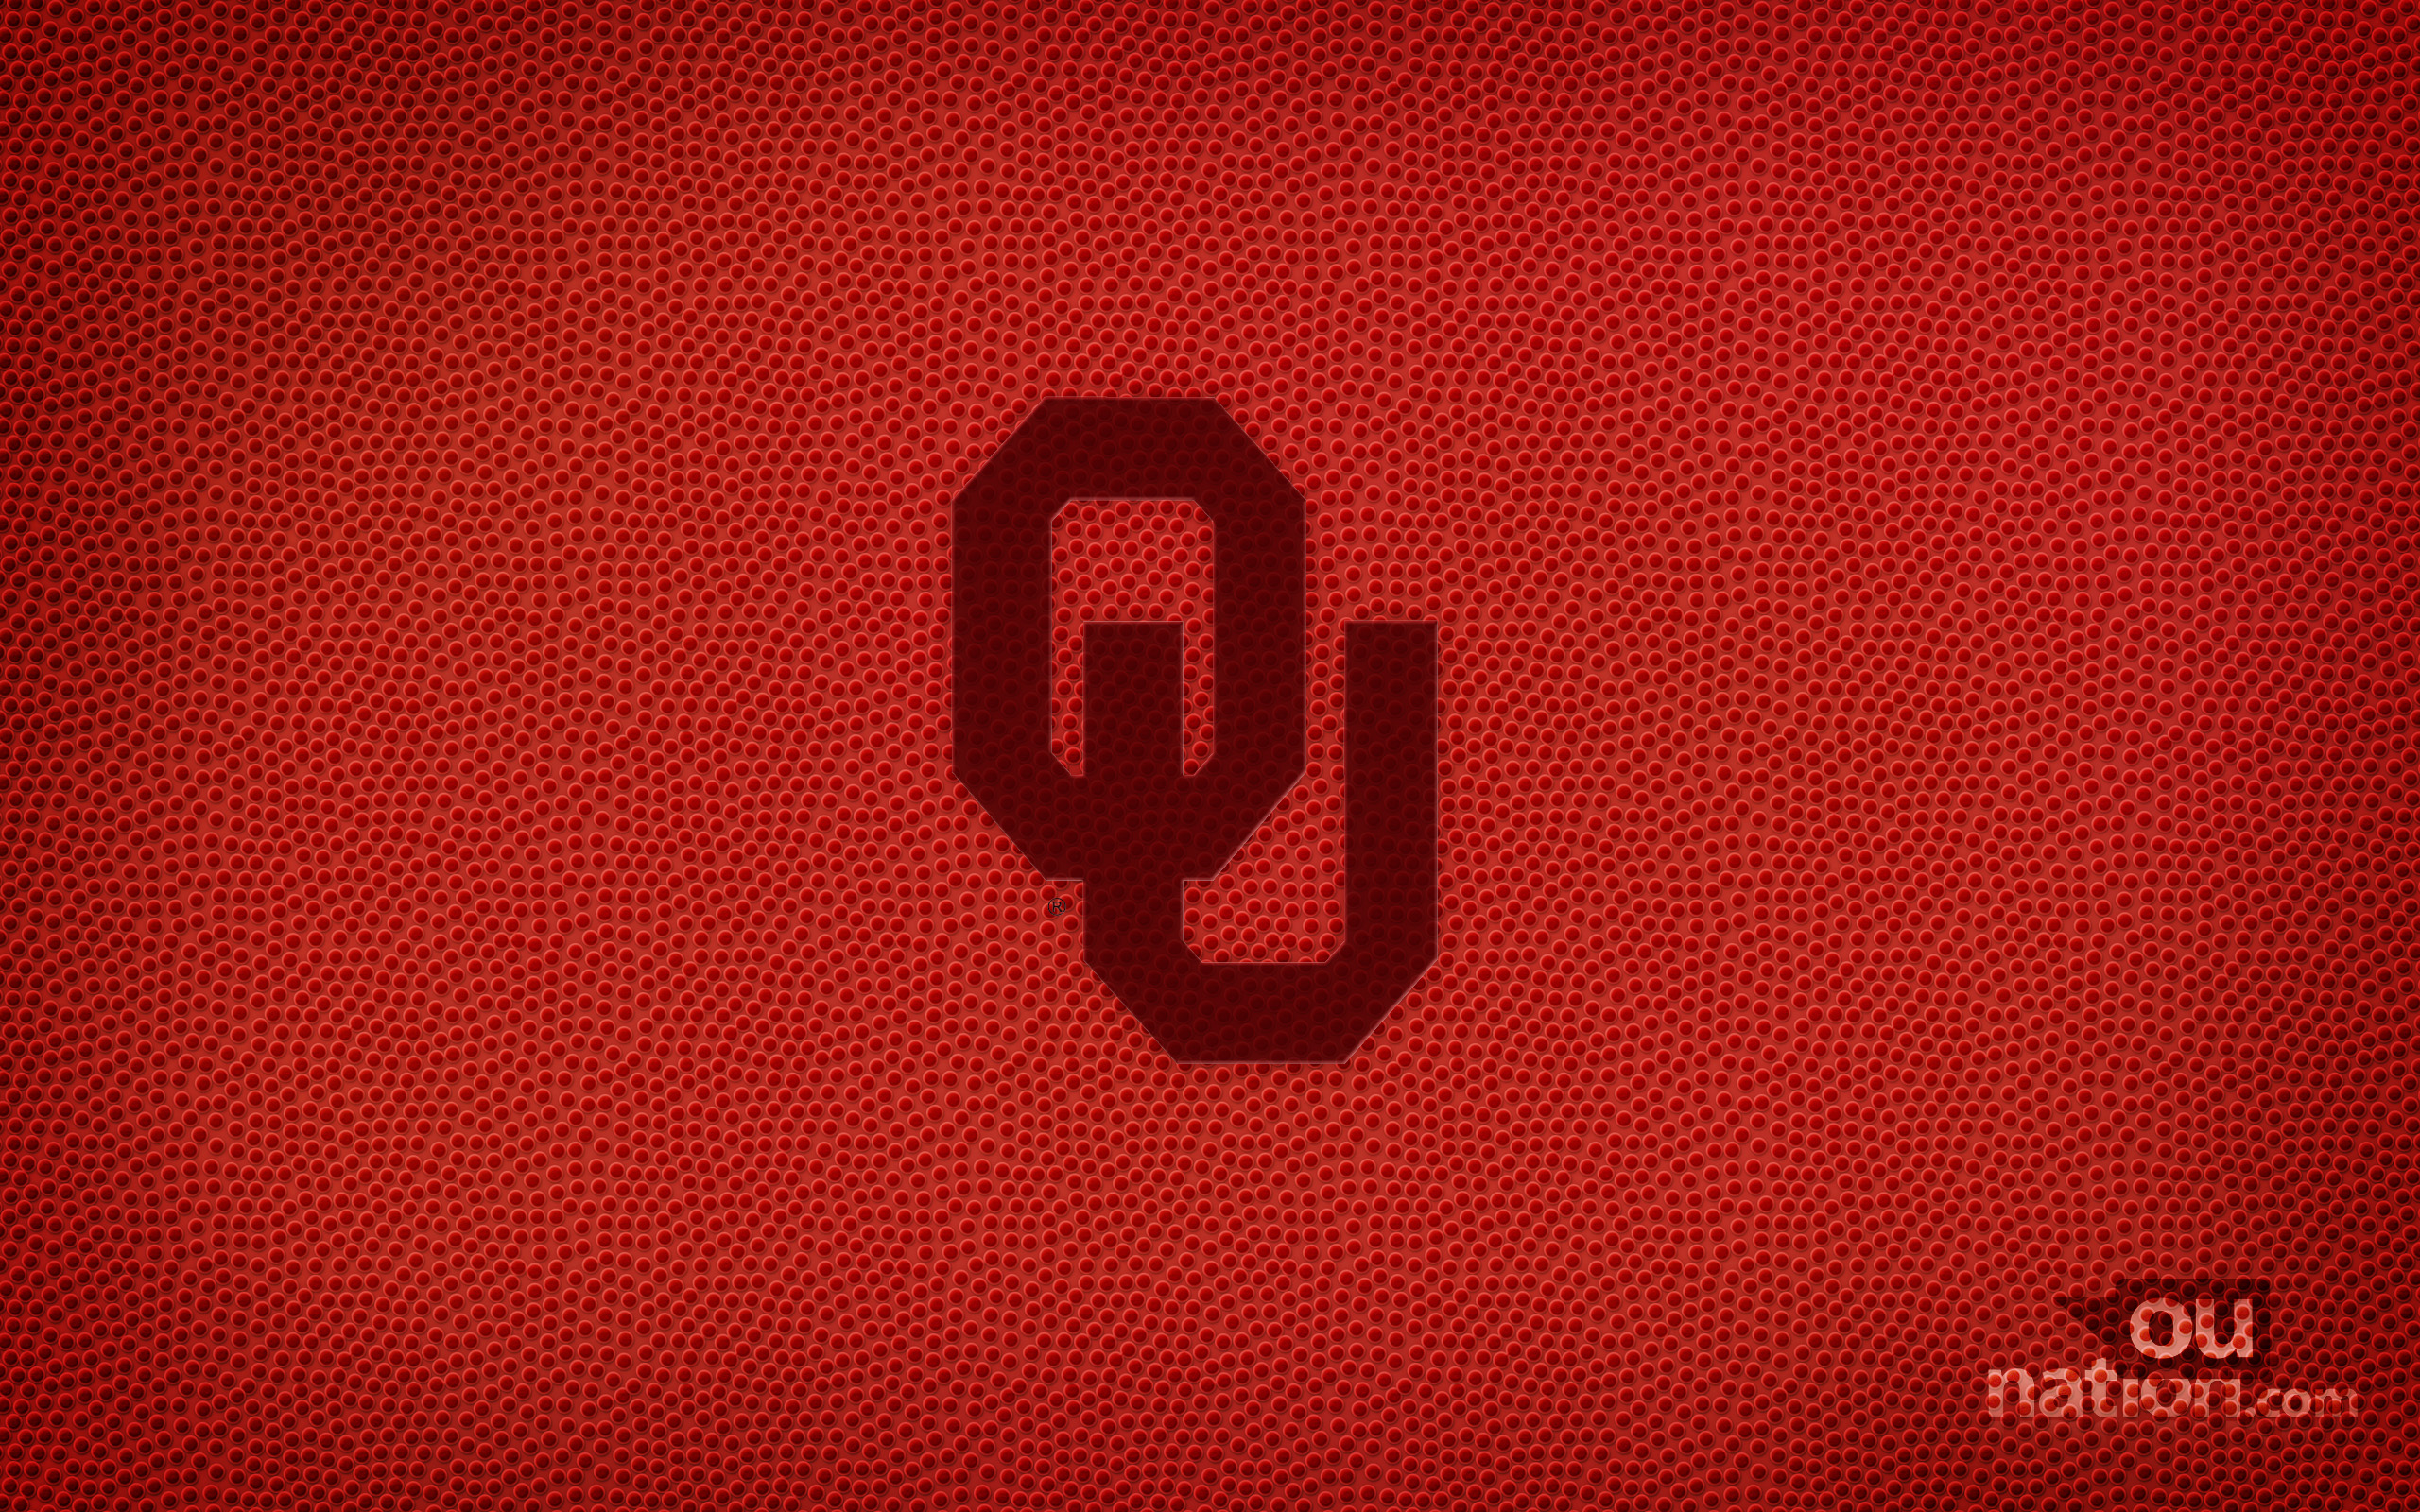 ou sooners wallpaper for laptop - photo #13